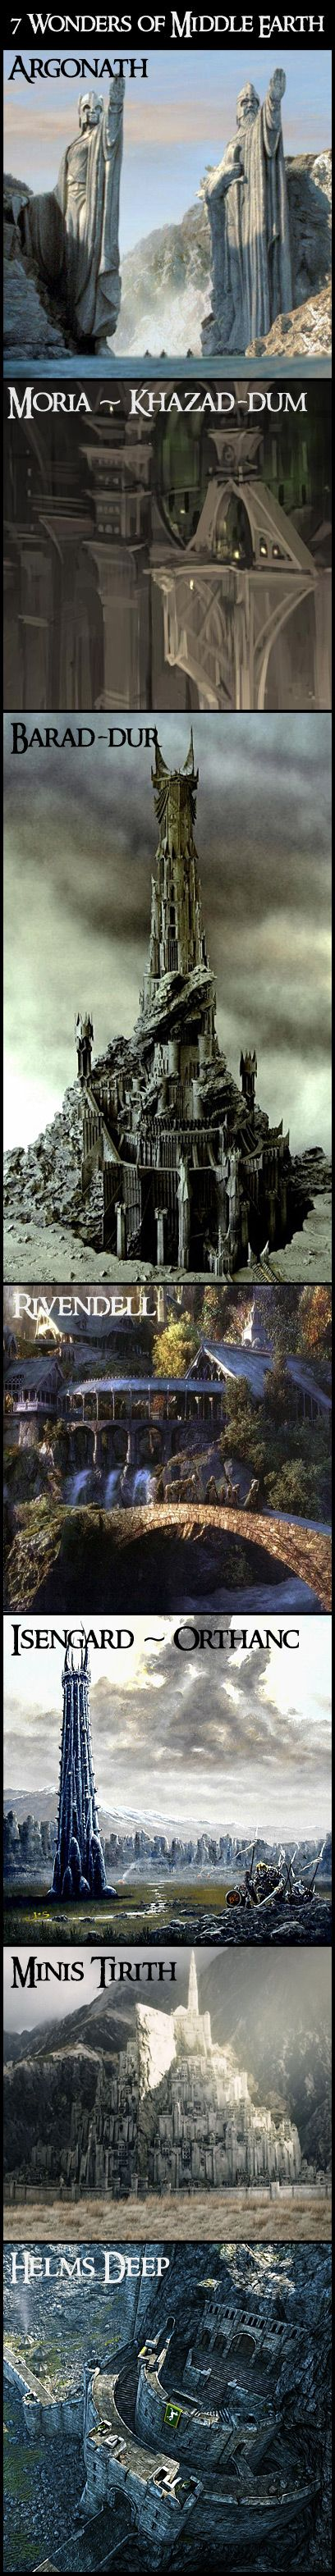 7 Wonders of Middle Earth